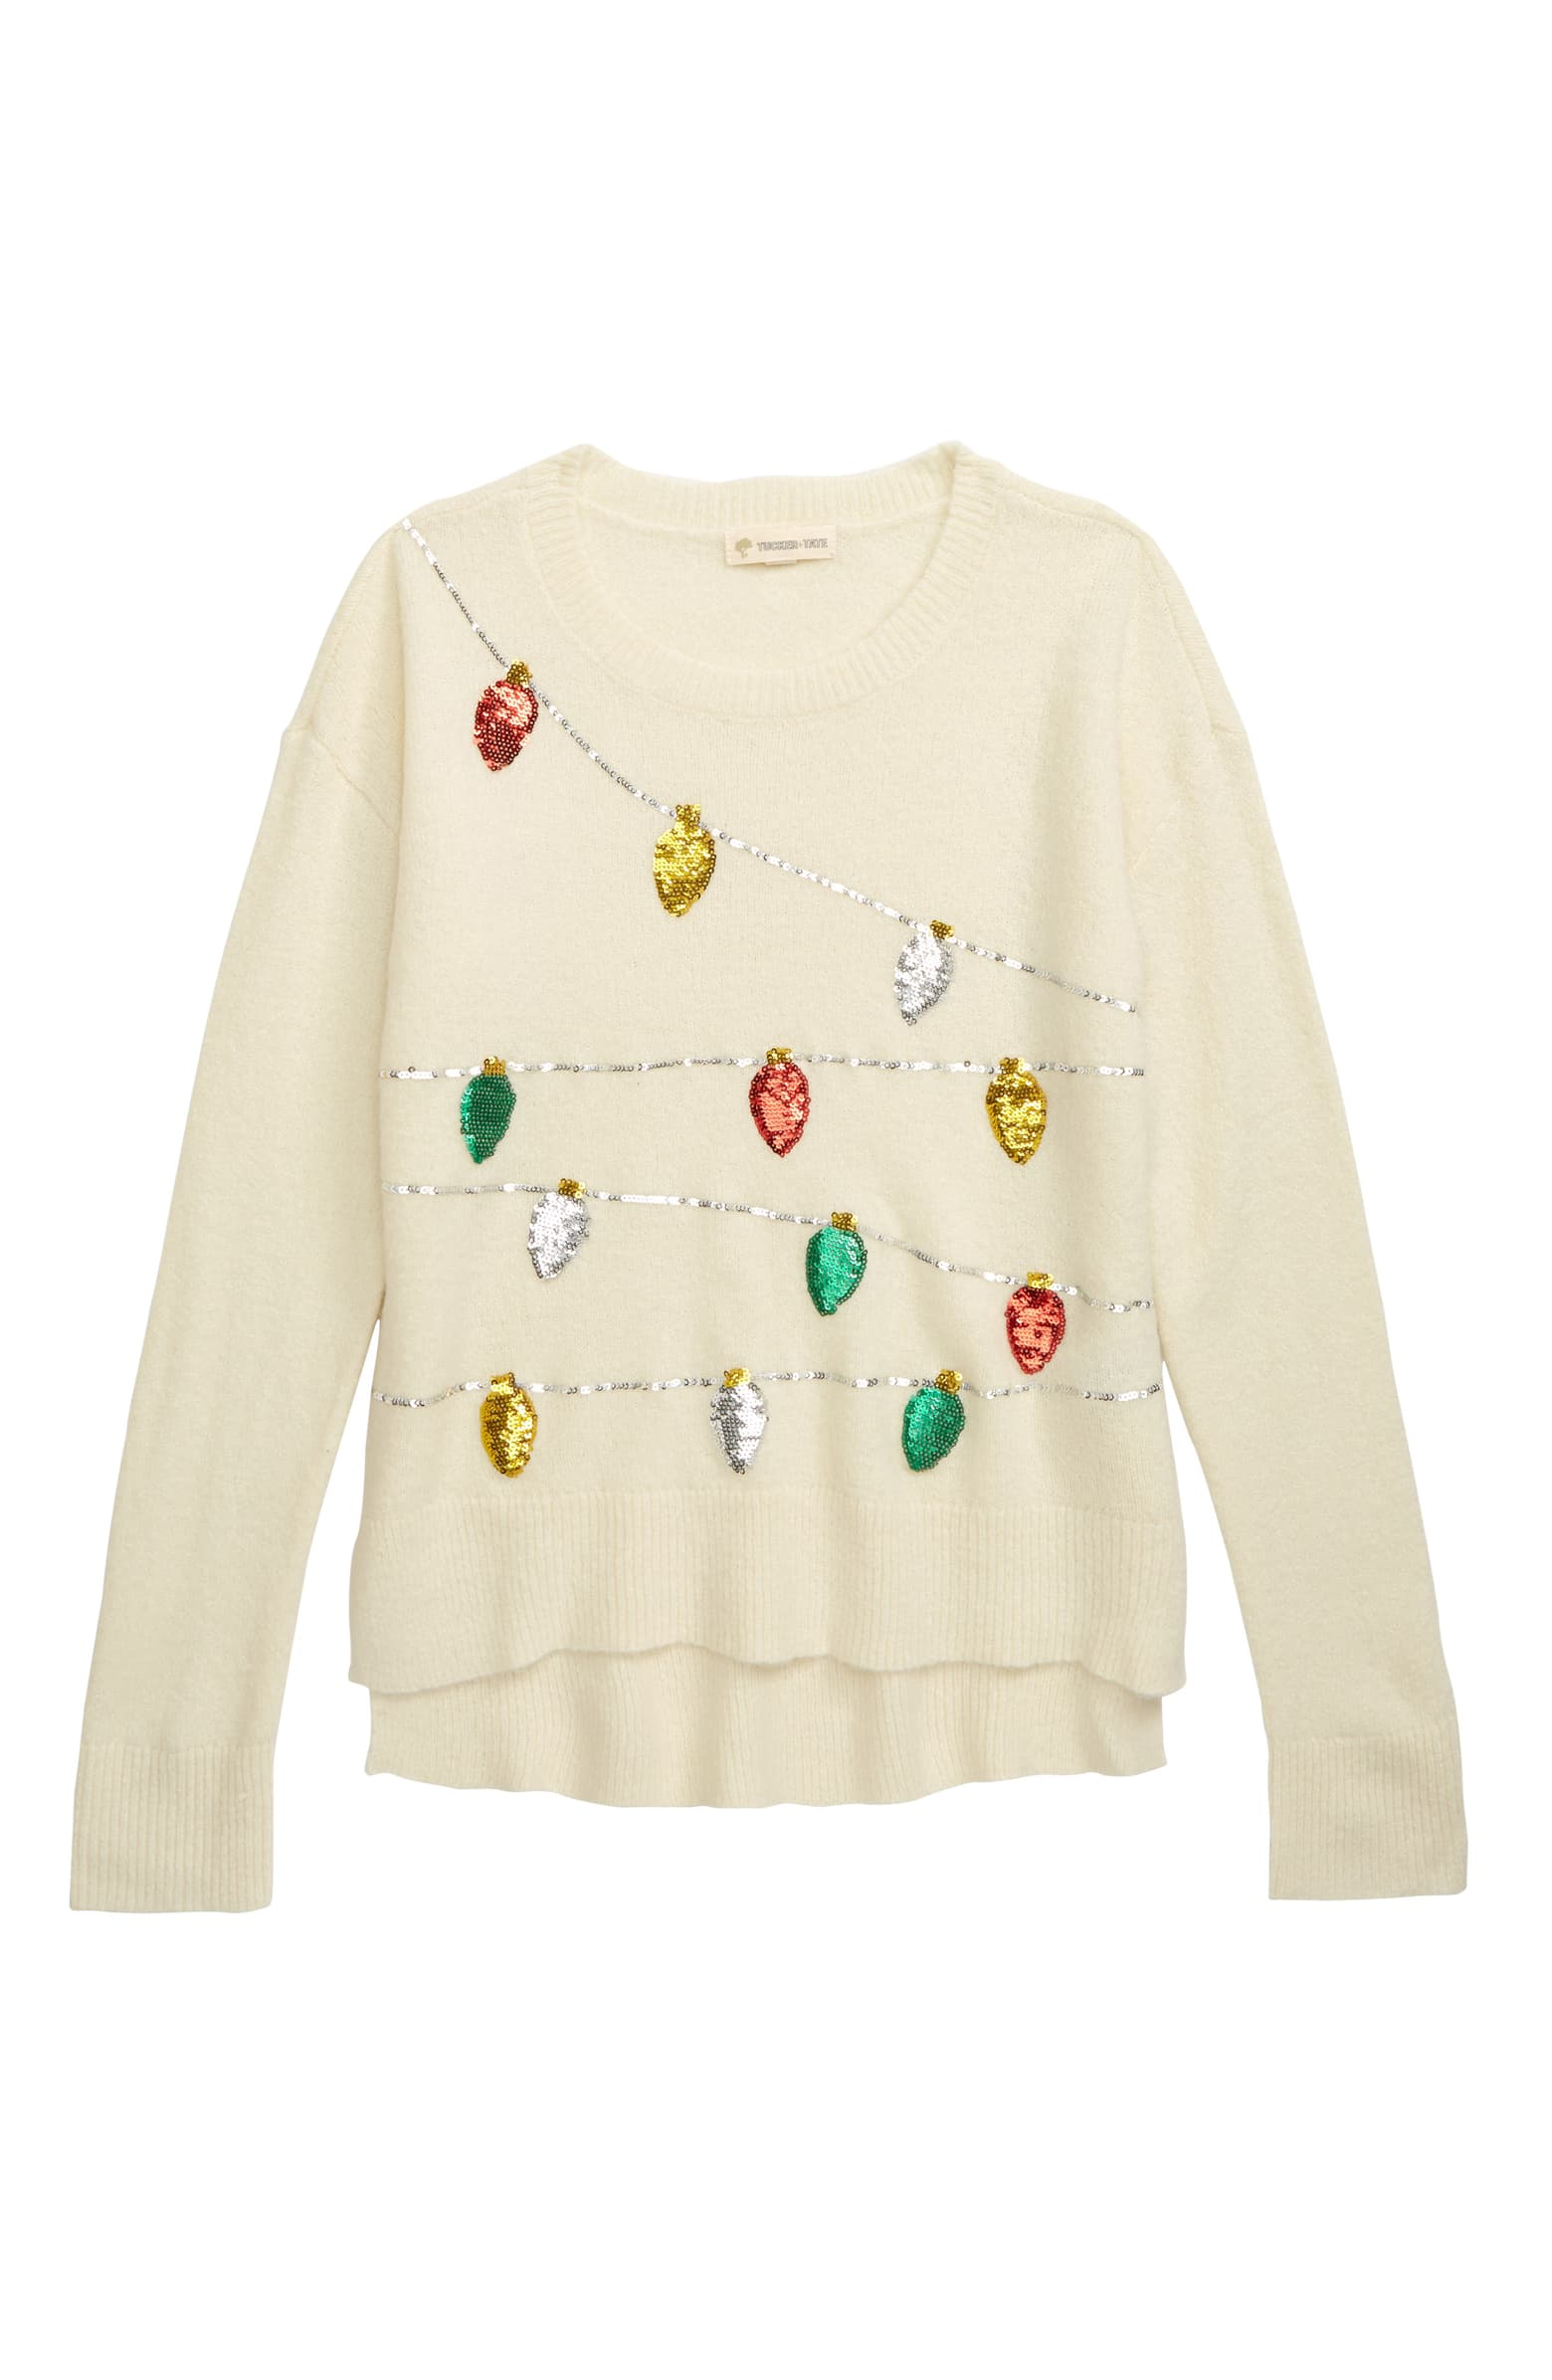 Tucker + Tate Holiday Sequin Embellished Sweater